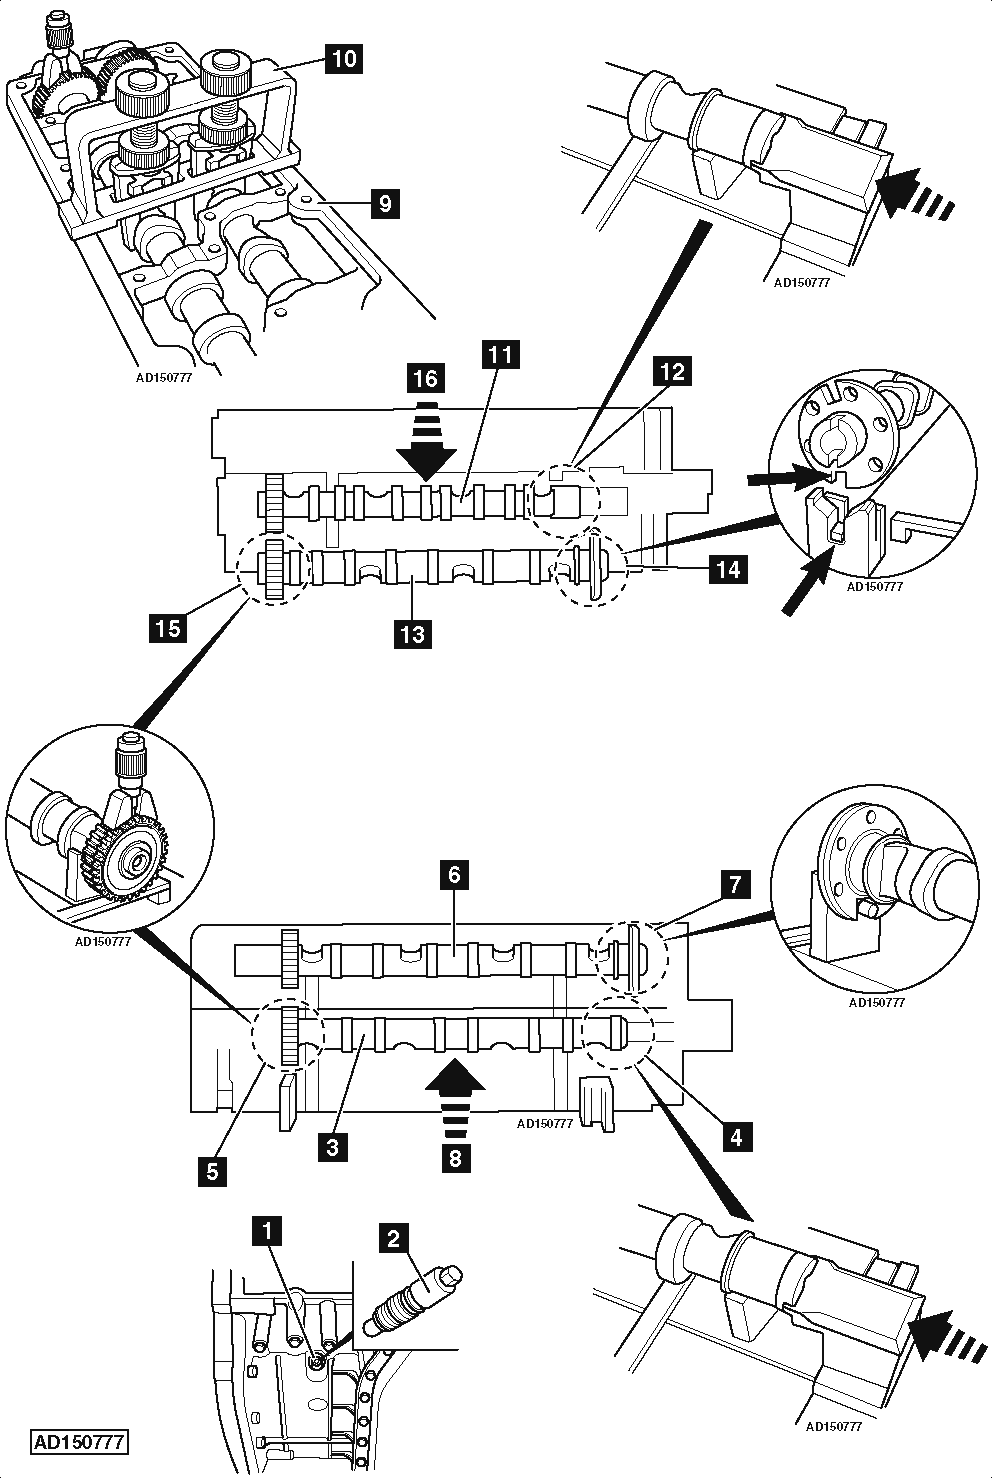 Cam Position Sensor and Sync Pulse Stator as well 33 2004 Mazda Tribute Engine Diagram together with P 0996b43f8037d219 in addition T4705483 P0345 code camshaft position sensor besides Obd 2 Wiring Diagram 2012 Ford Fusion. on bmw camshaft position sensor